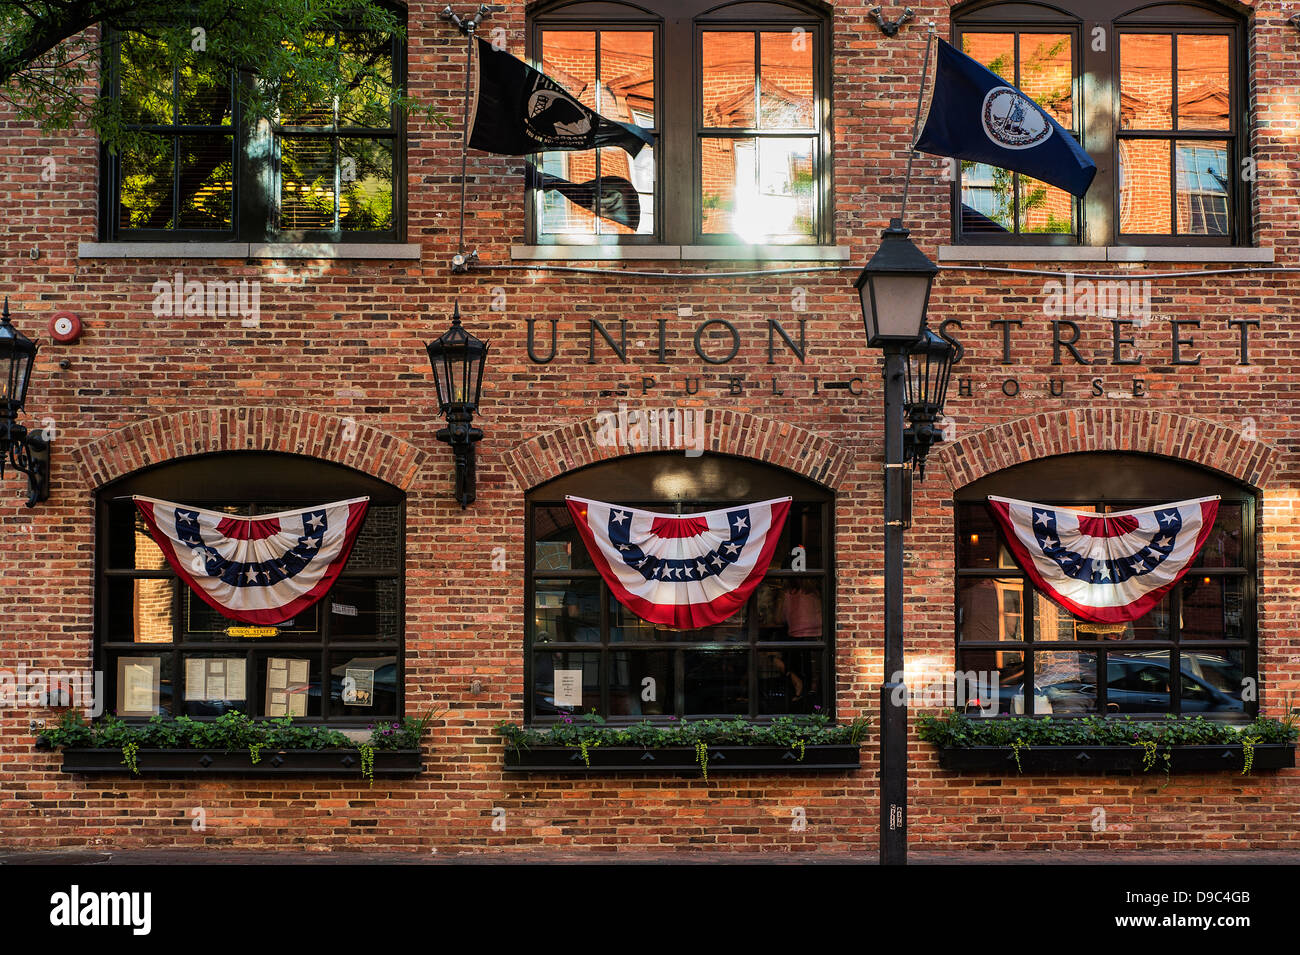 Pub in Old Town, Alexandria, Virginia, USA - Stock Image